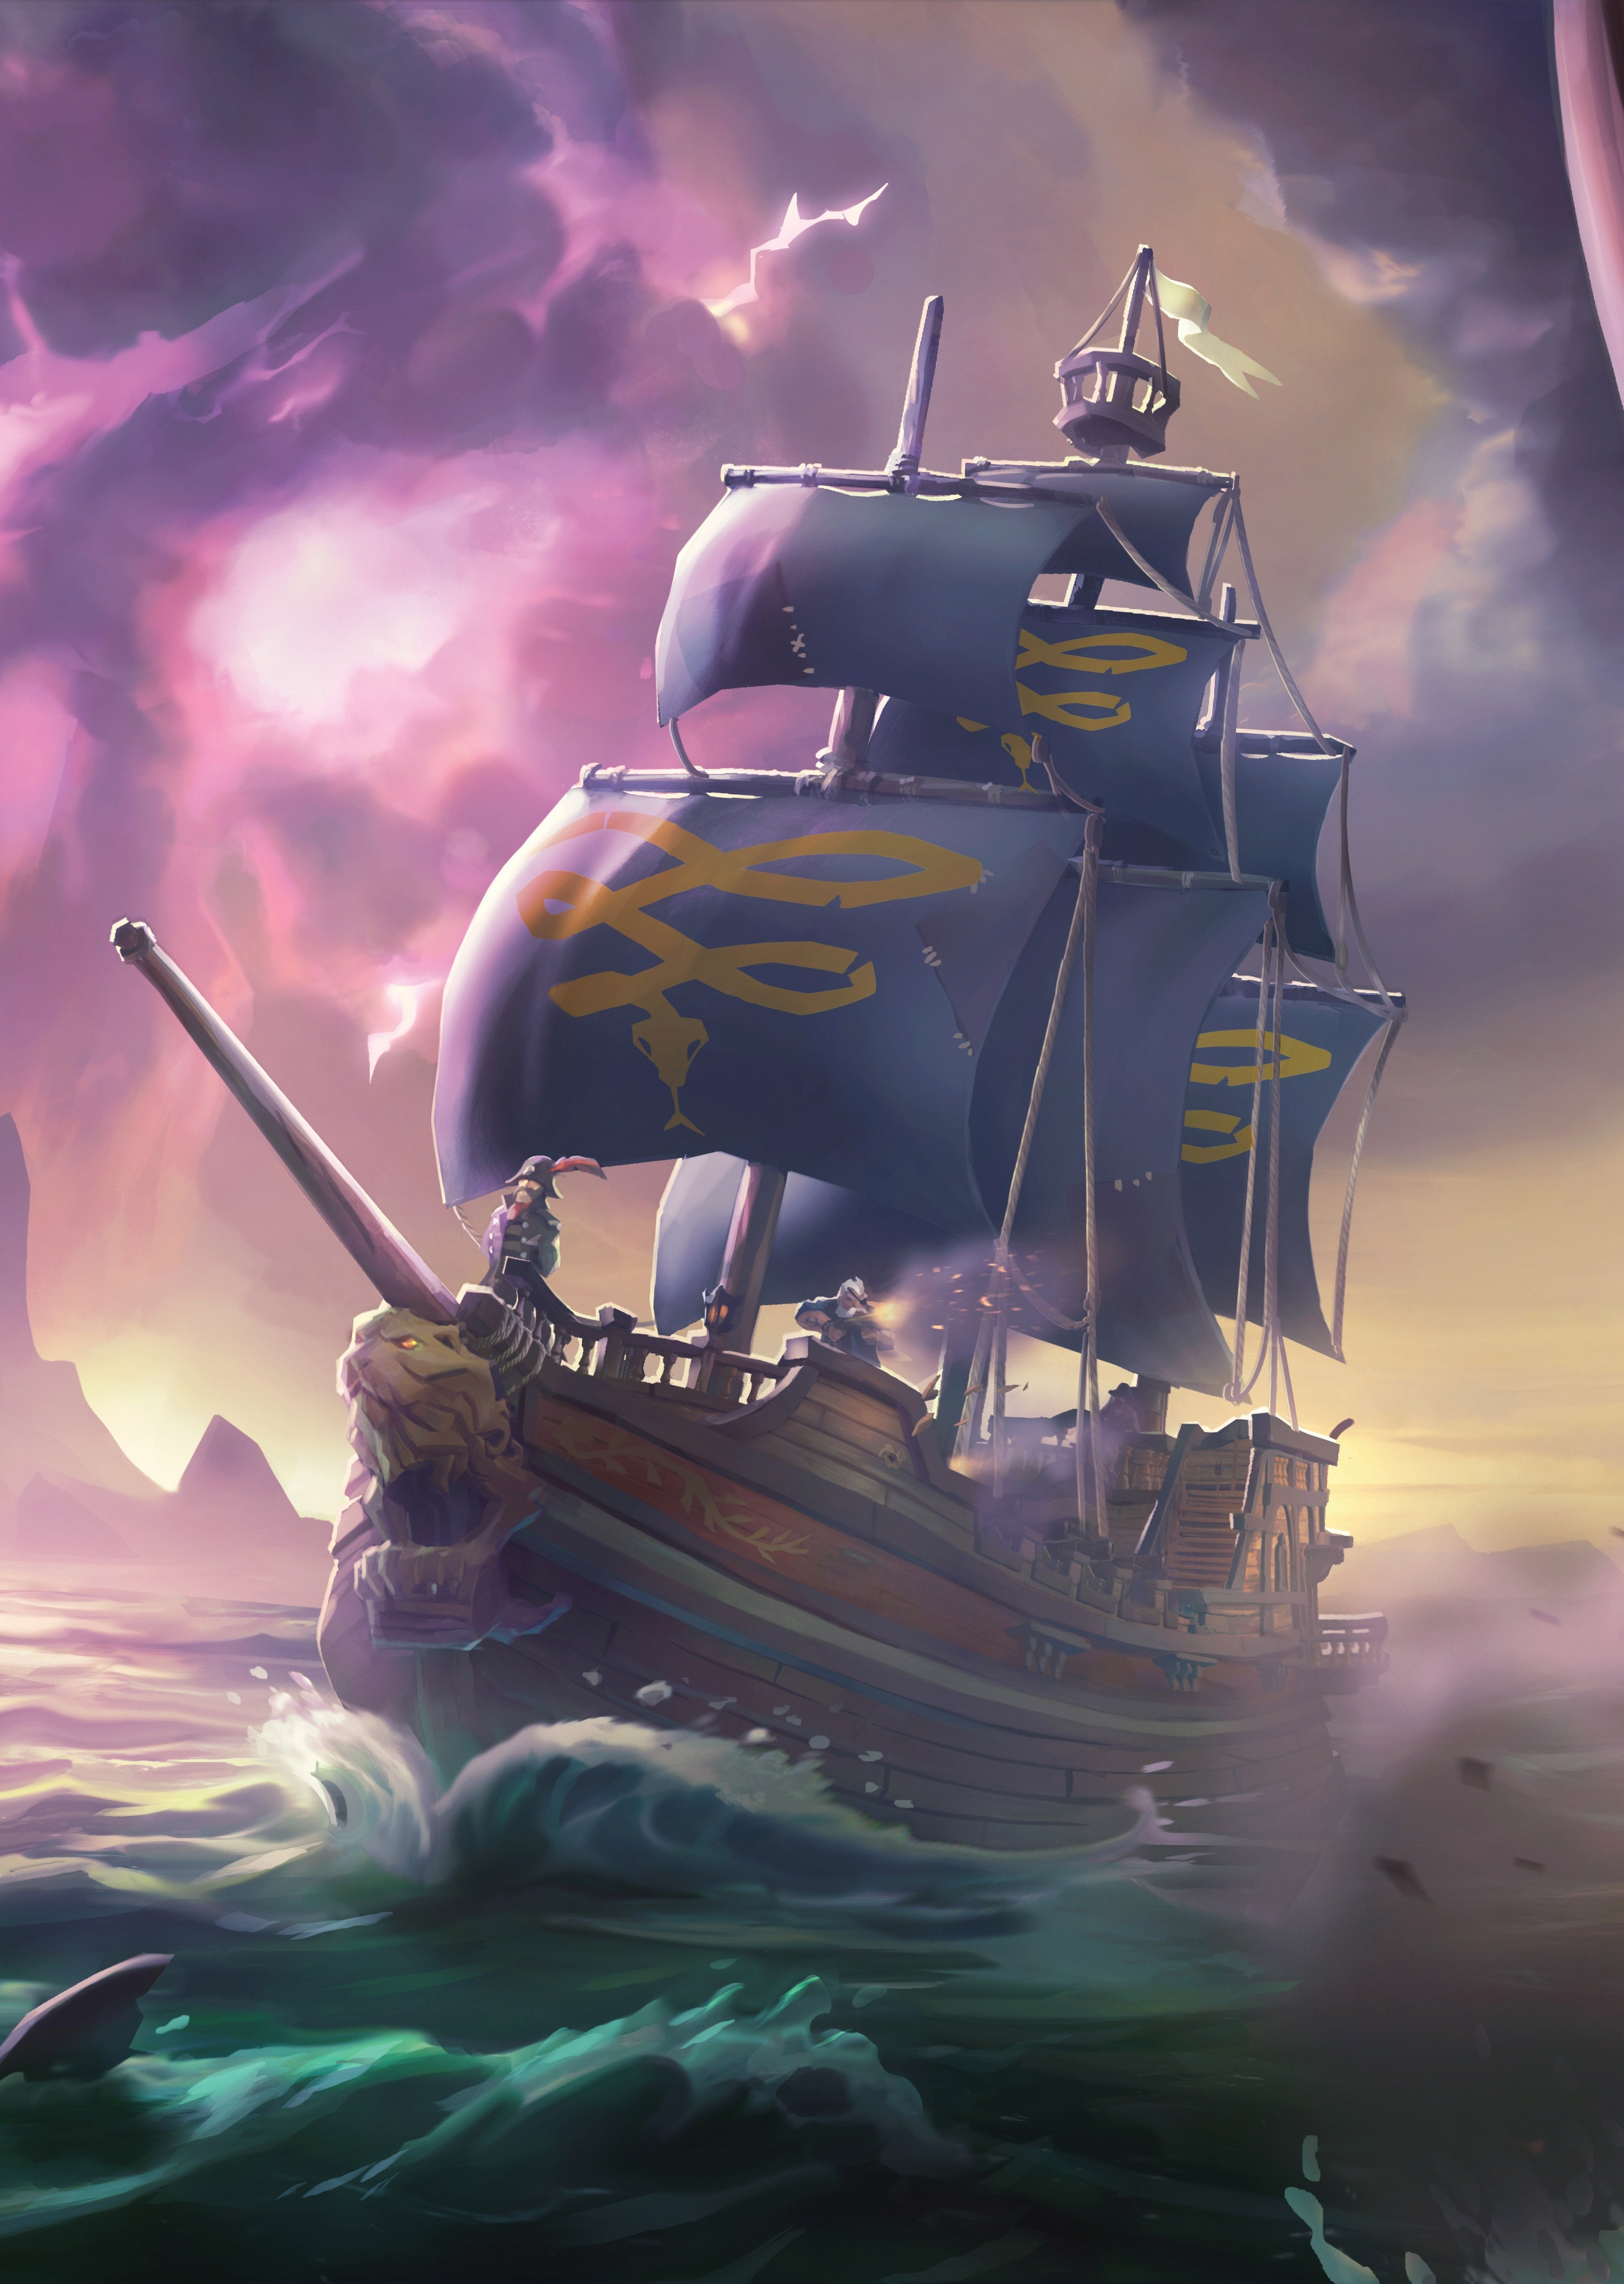 Keeping Sea of Thieves afloat